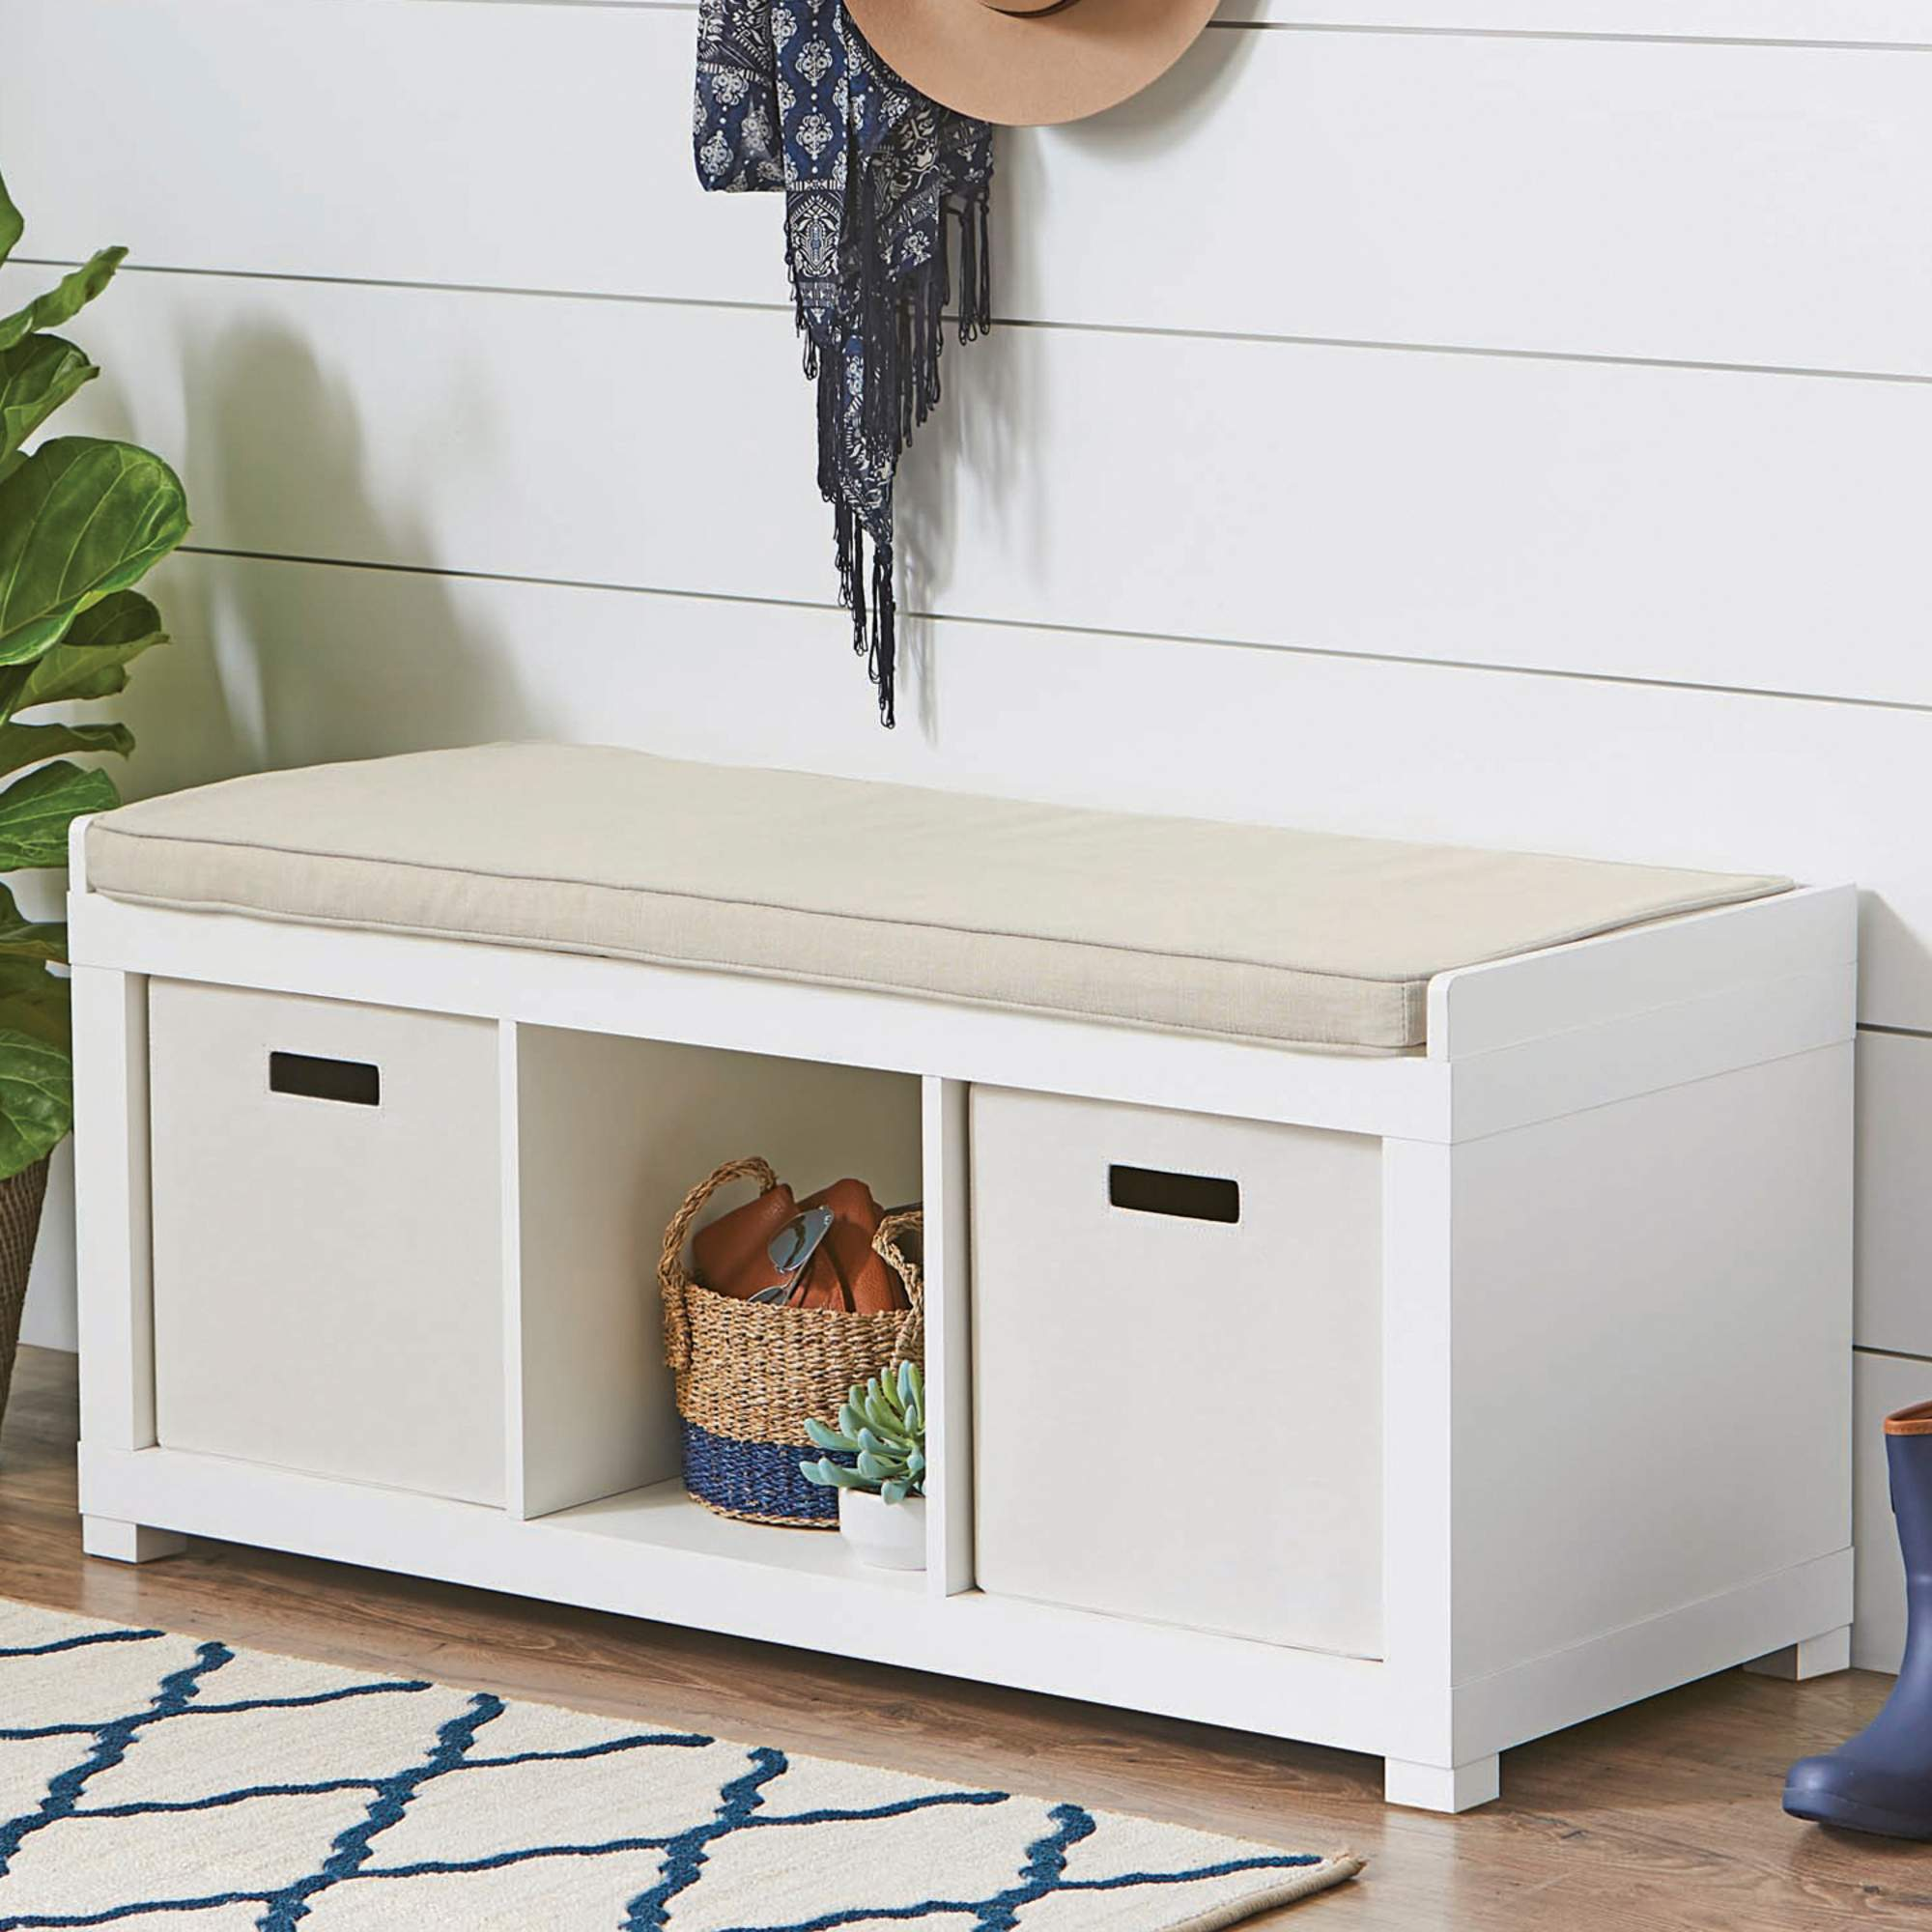 Delicieux Better Homes And Gardens 3 Cube Organizer Storage Bench, Multiple Finishes    Walmart.com